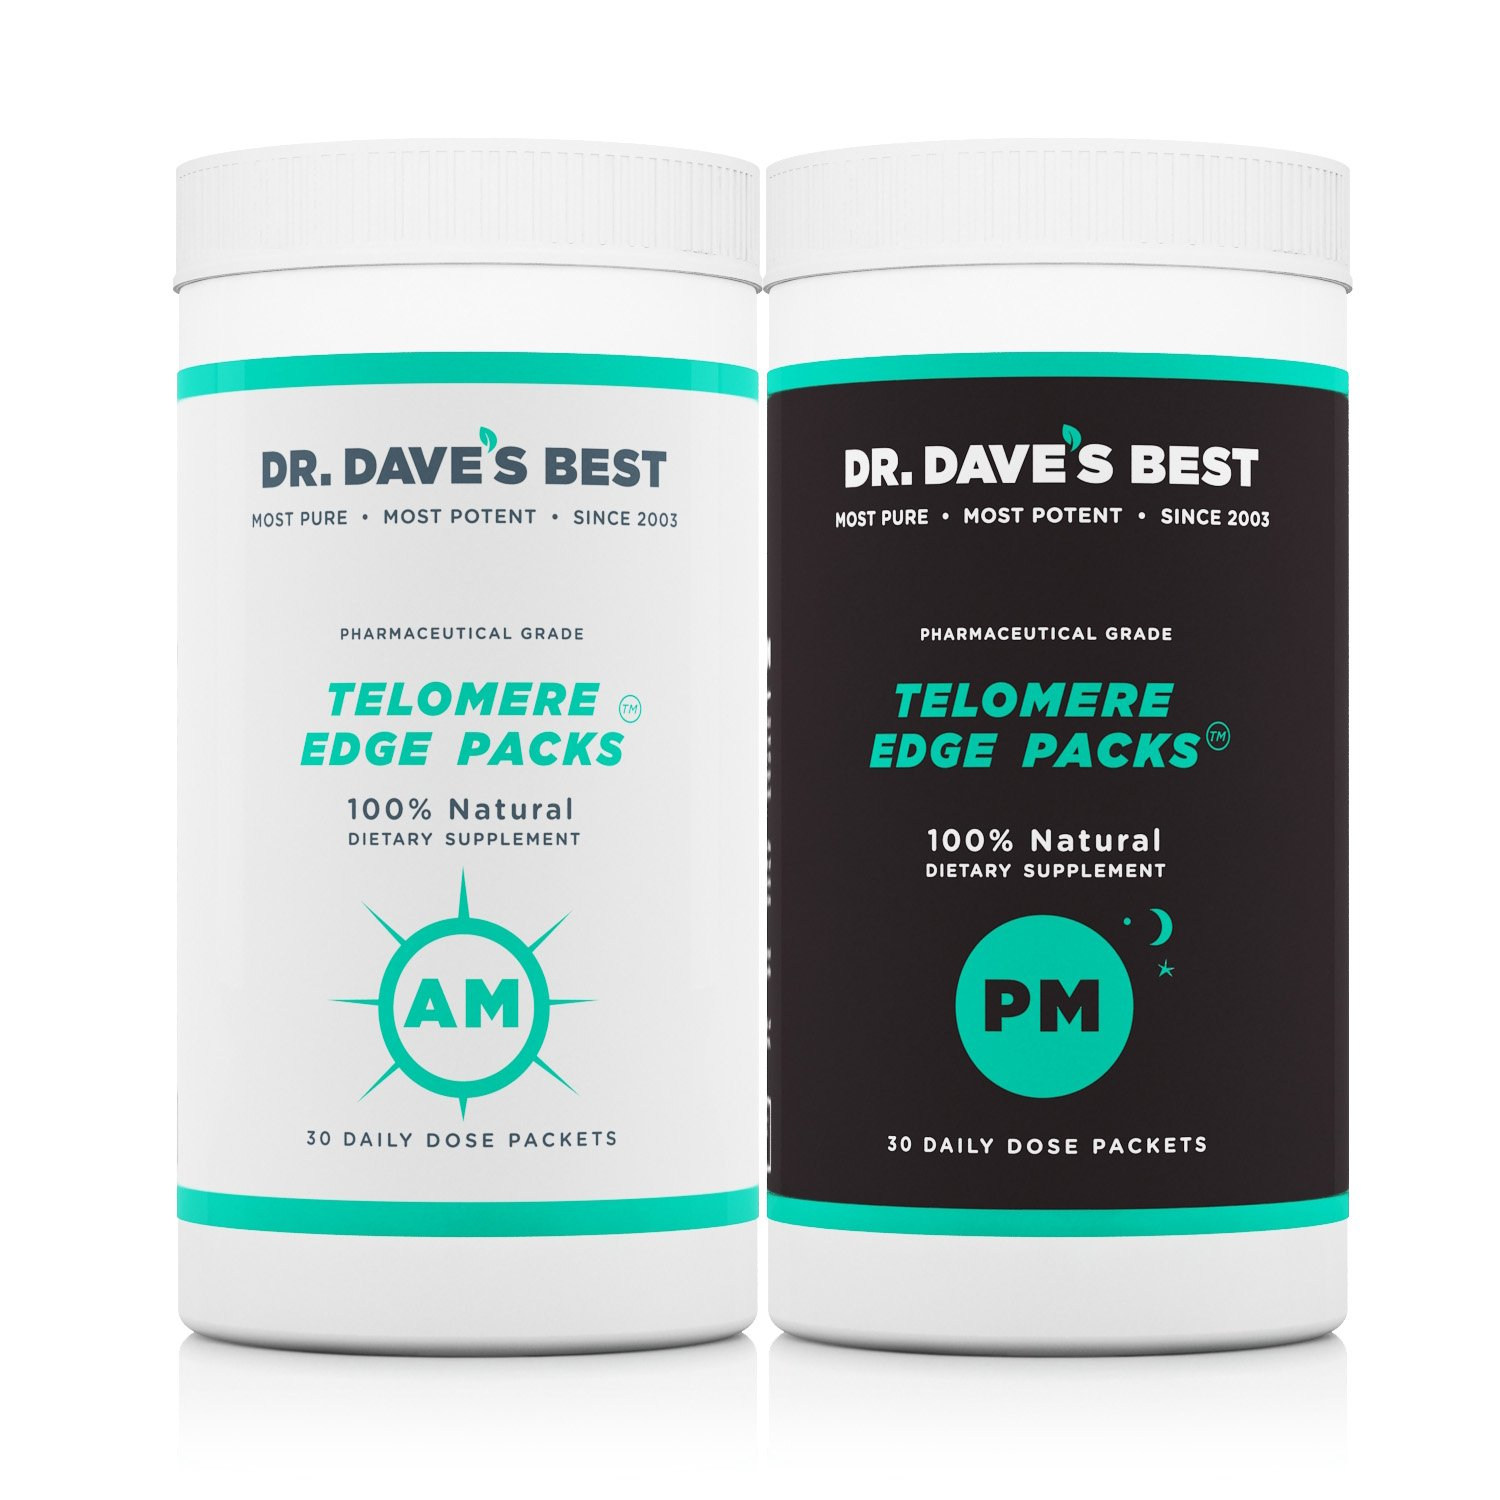 Dr. Dave's Best Telomere Edge Packs | 30 Day Supply | Complete Daily Nutrition Packs - Vitamins, Minerals, Omega-3s, Amino Acids, and Fish Oils | High Potency and Bioavailability